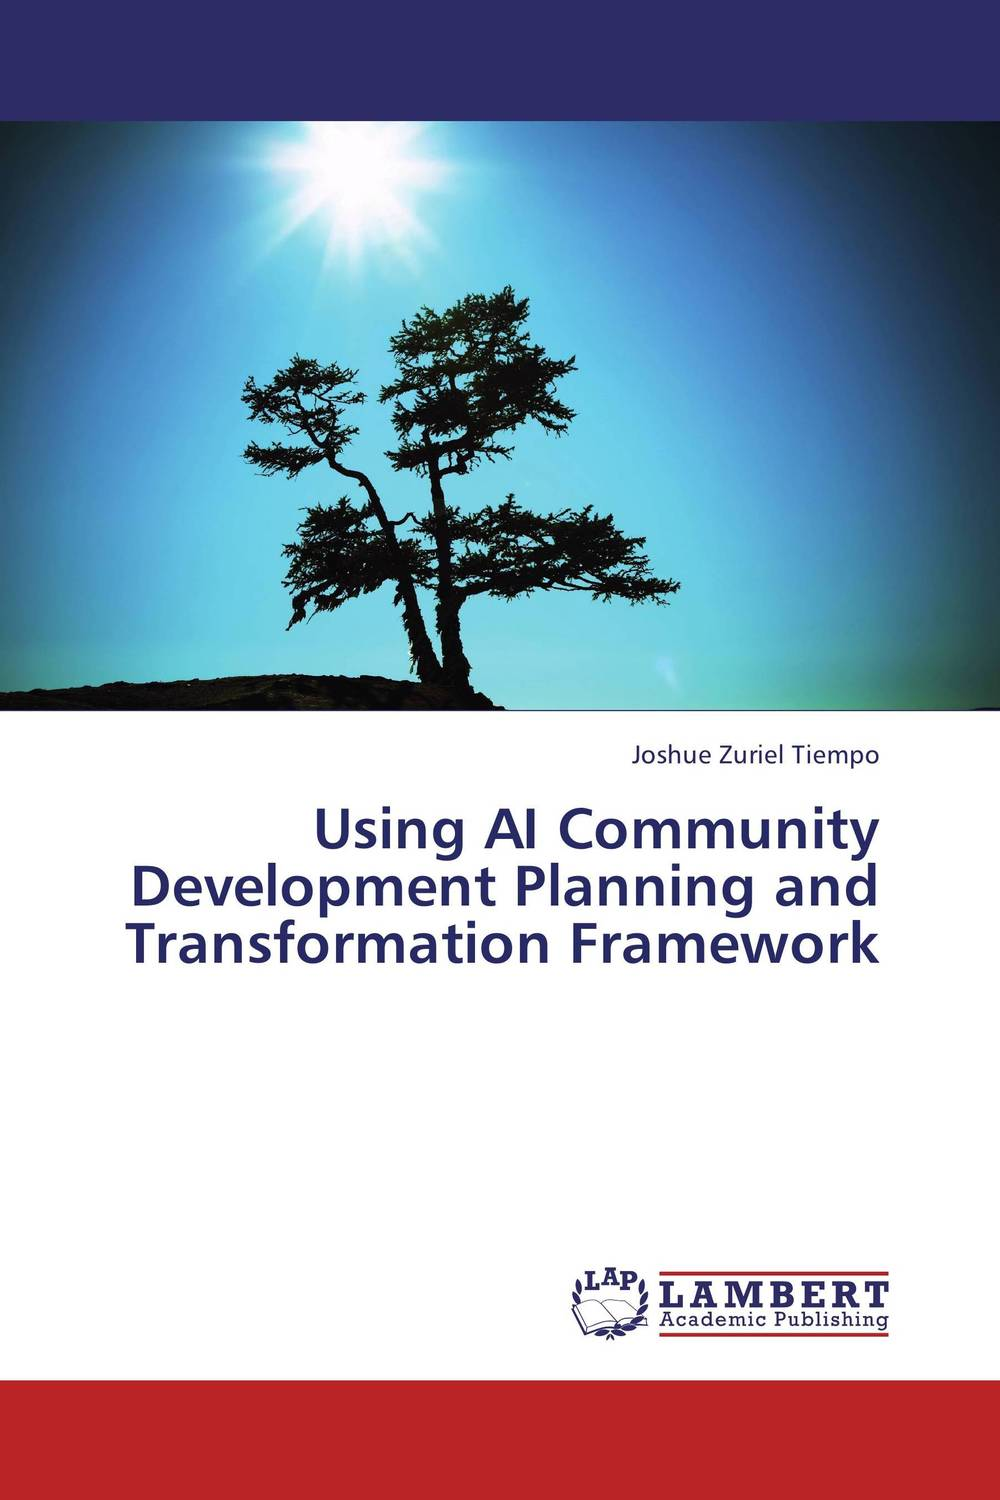 Using AI Community Development Planning and Transformation Framework maxwell musingafi raphinos alexander chabaya and emmanuel dumbu groups and community mobilisation for development